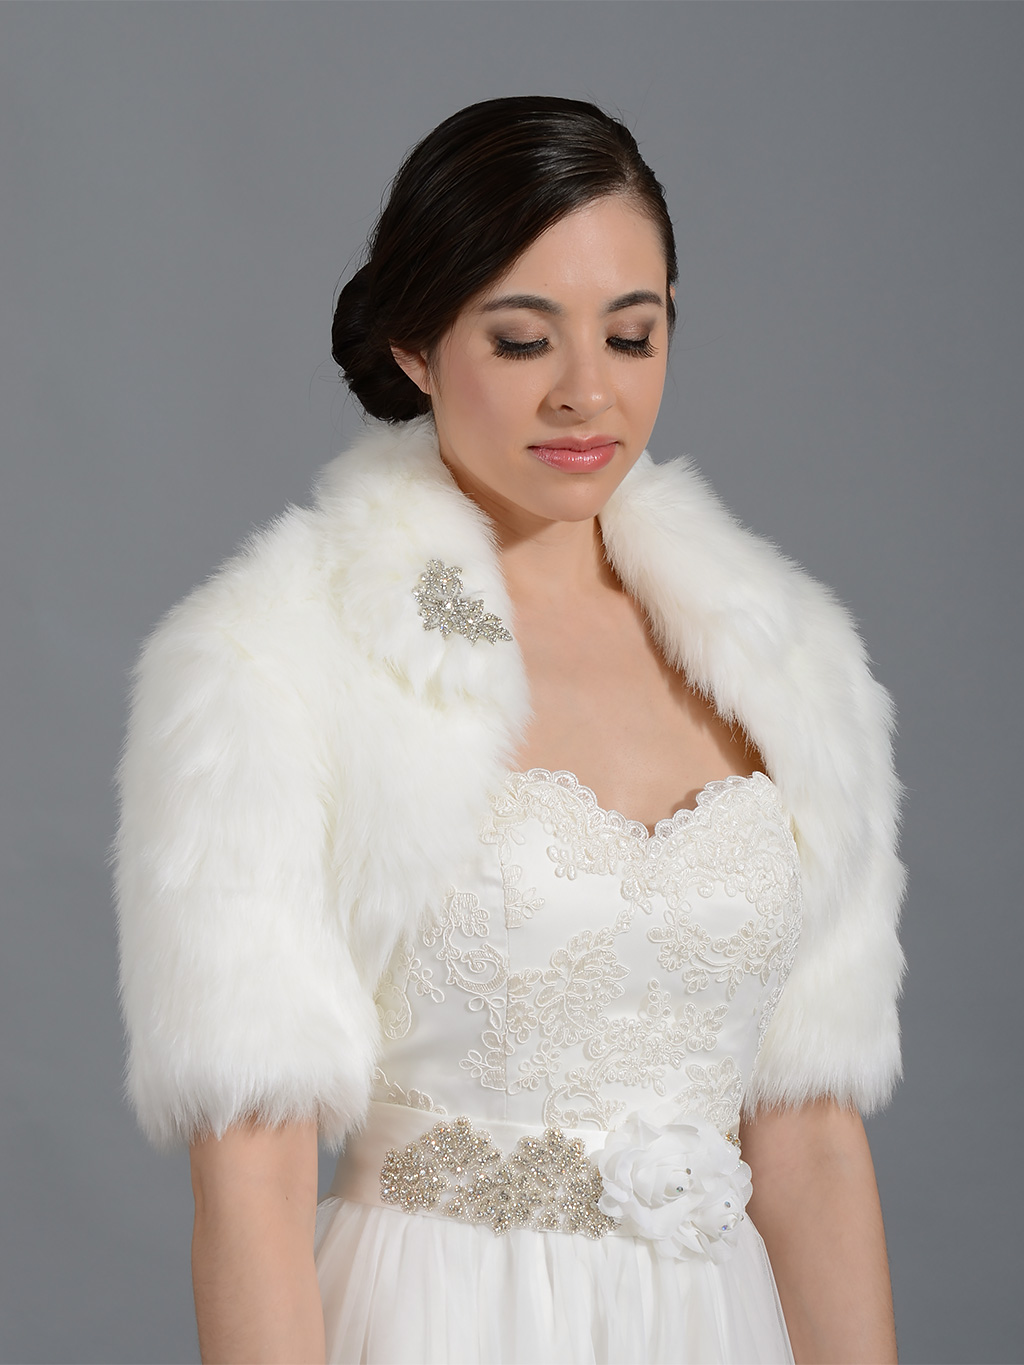 ... Bolero / Shrug > Elbow length sleeve faux fur bolero jacket shrug Wrap